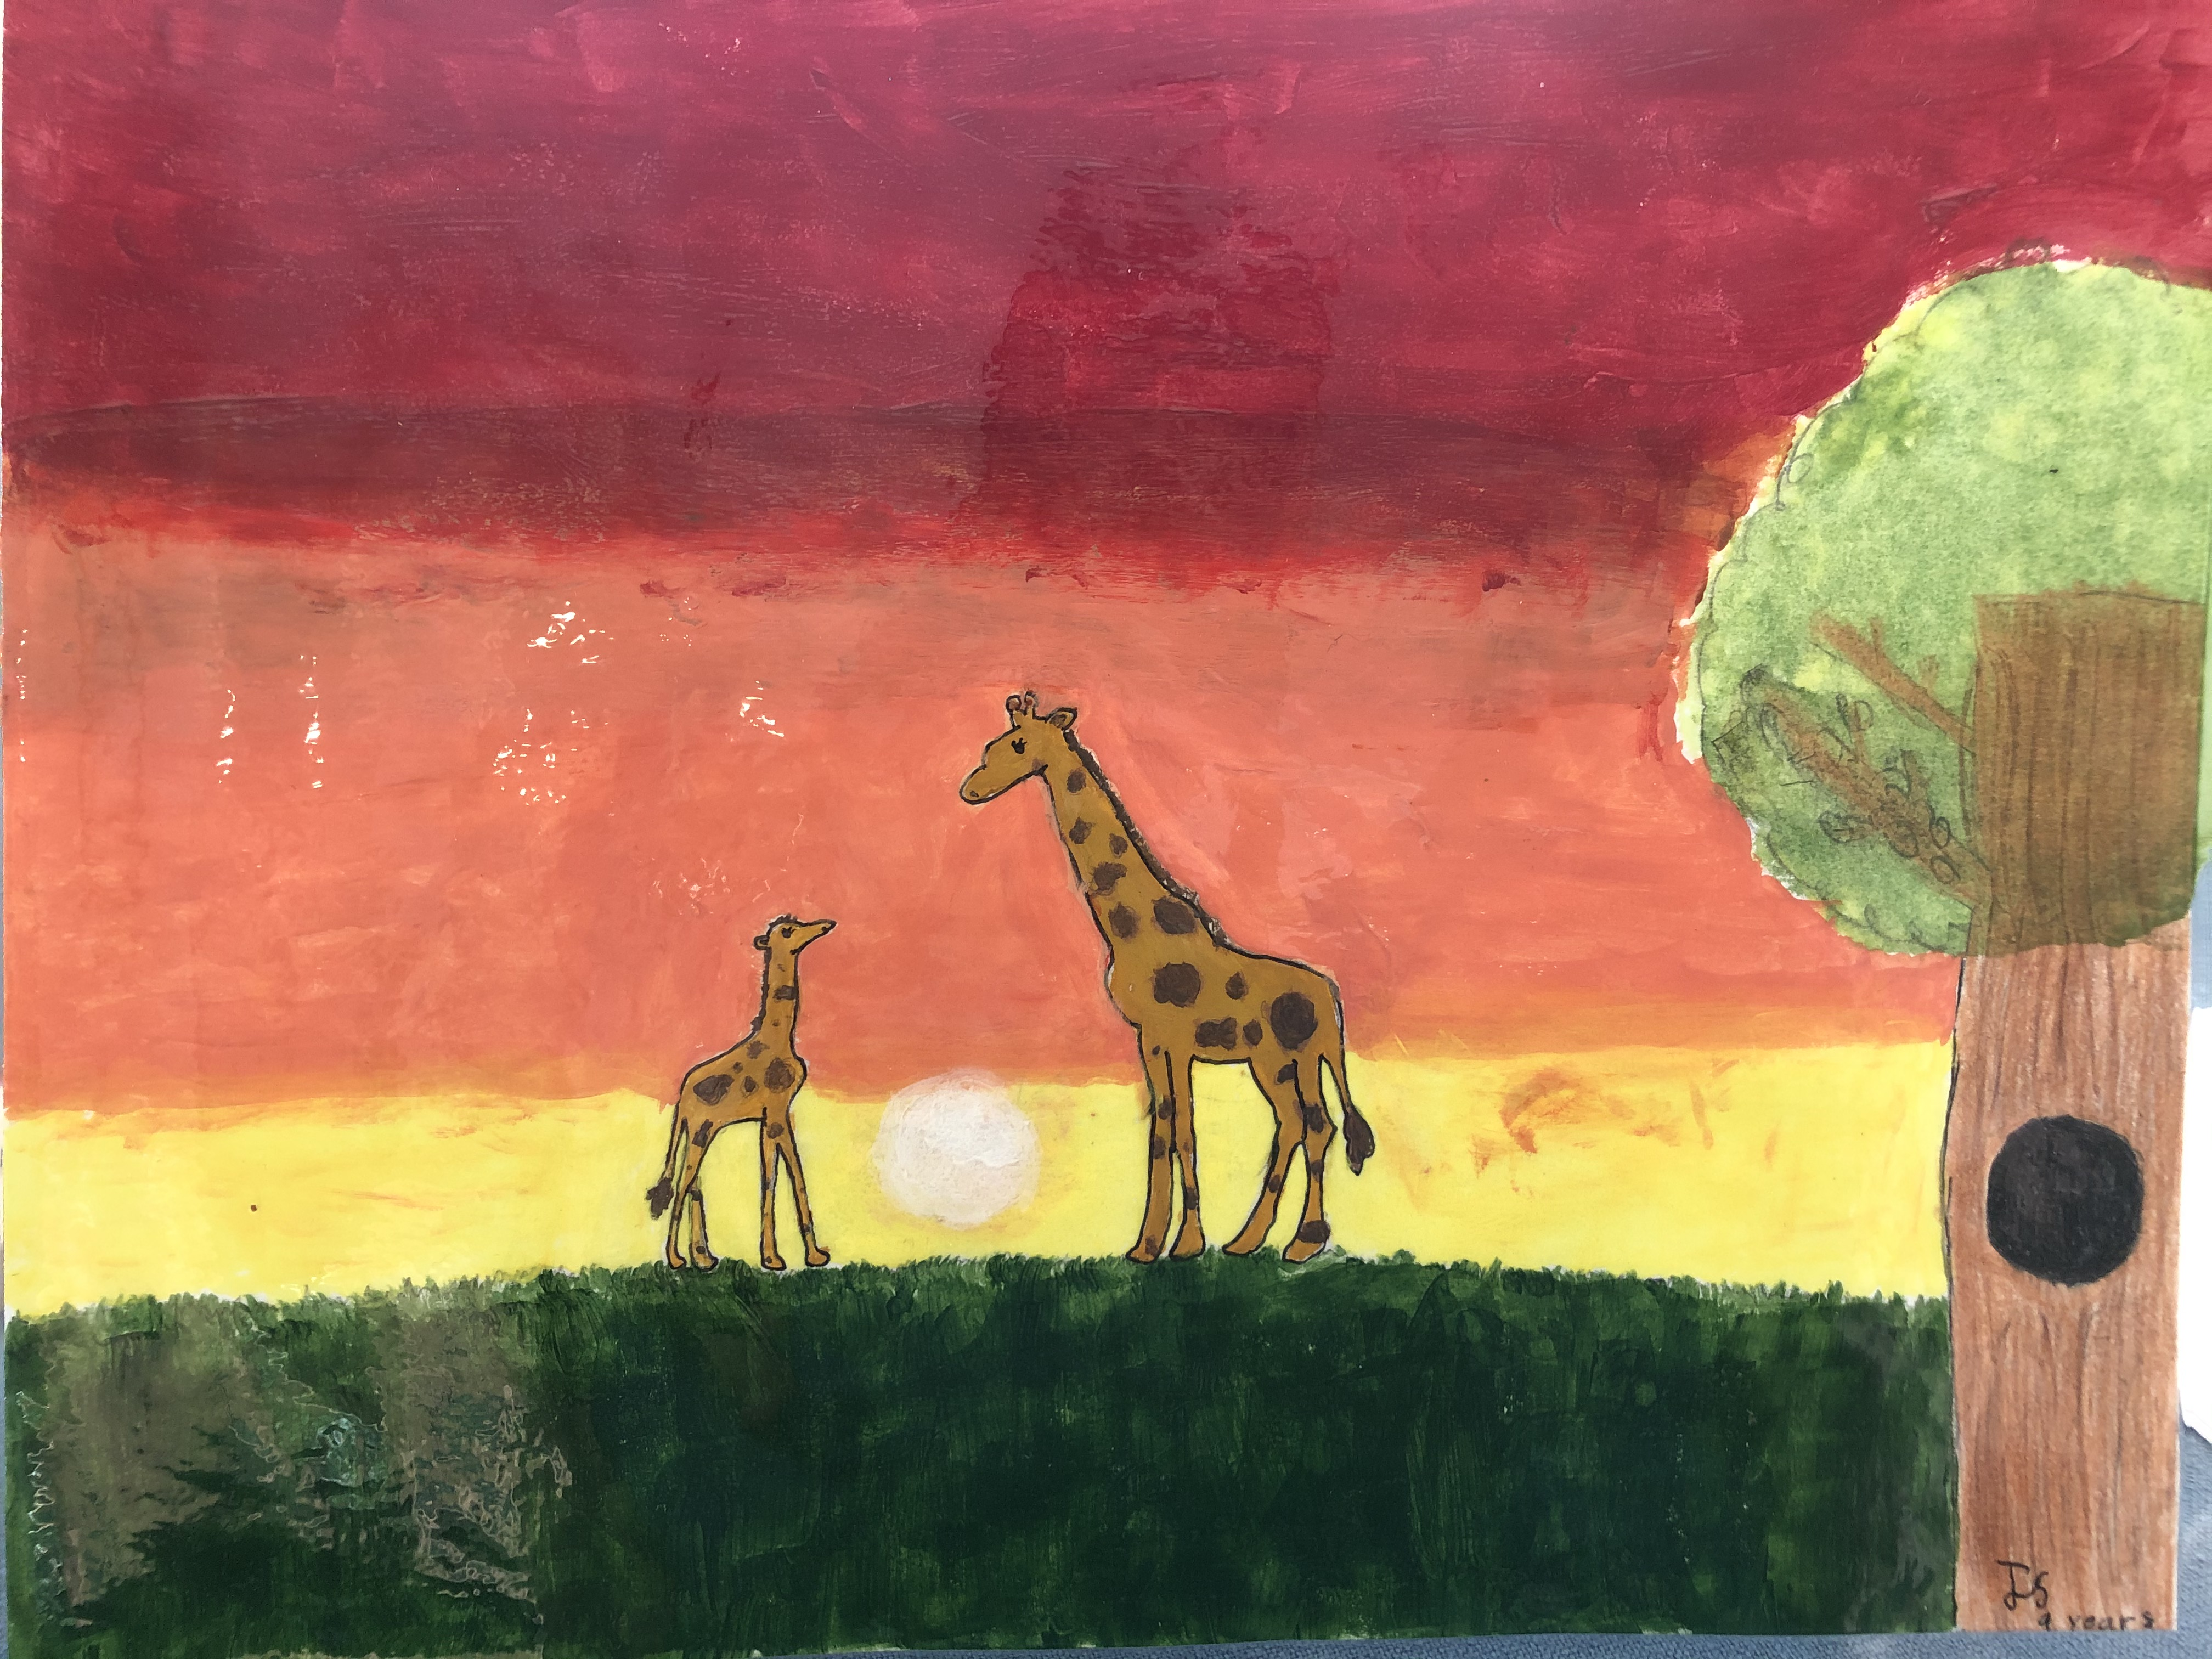 Sunsets in the Wild by Jenna Spong